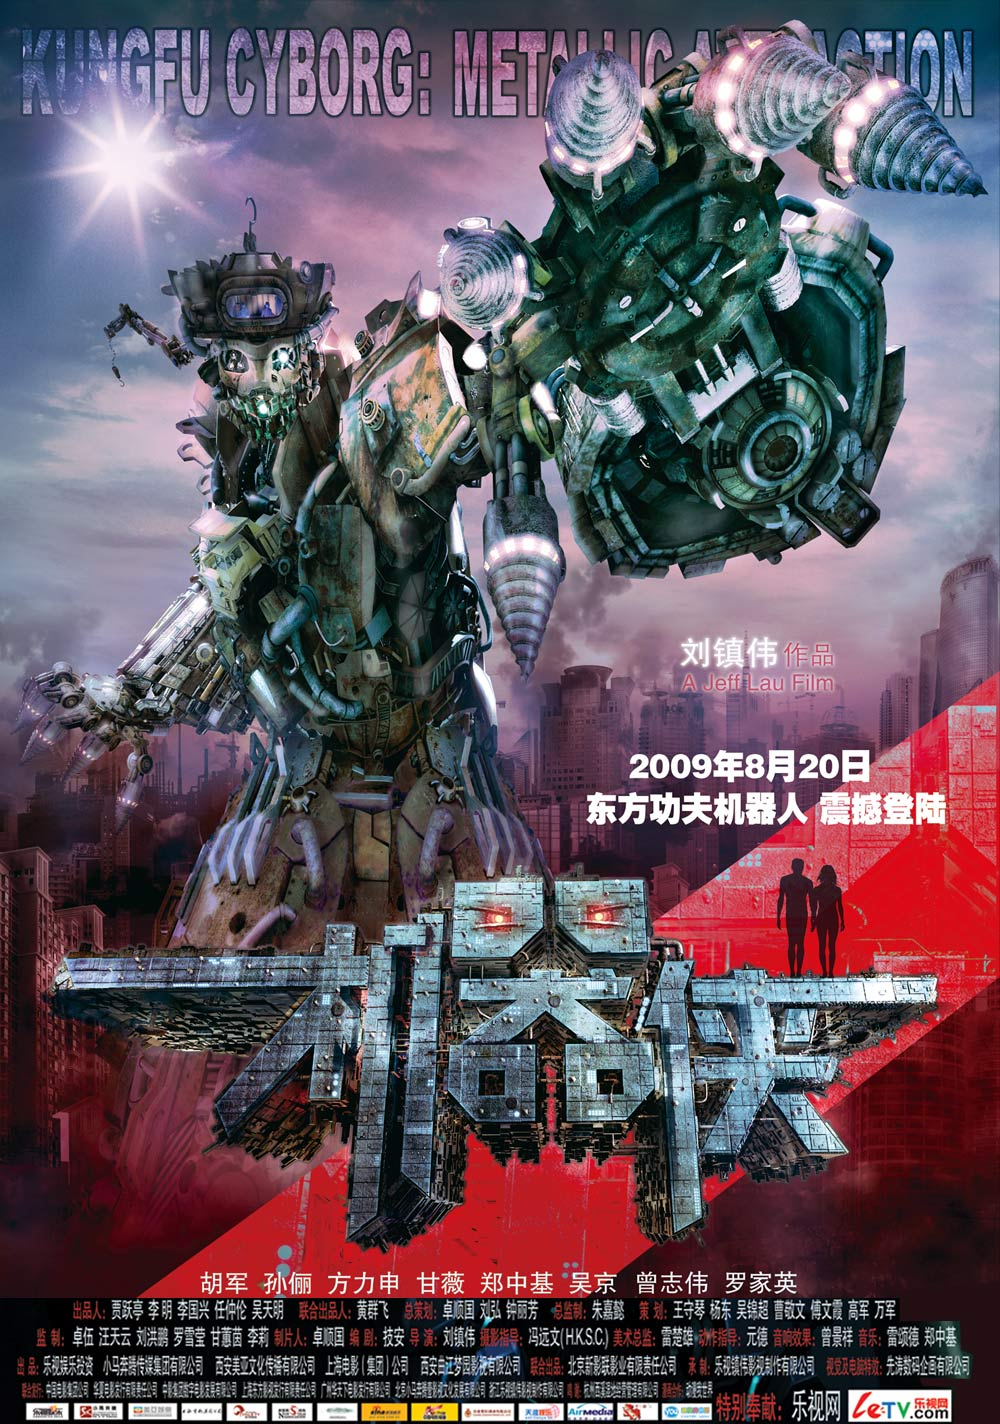 kung, poster, Movies, Metallic, Attraction, Cyborg, фото, Kung-fu